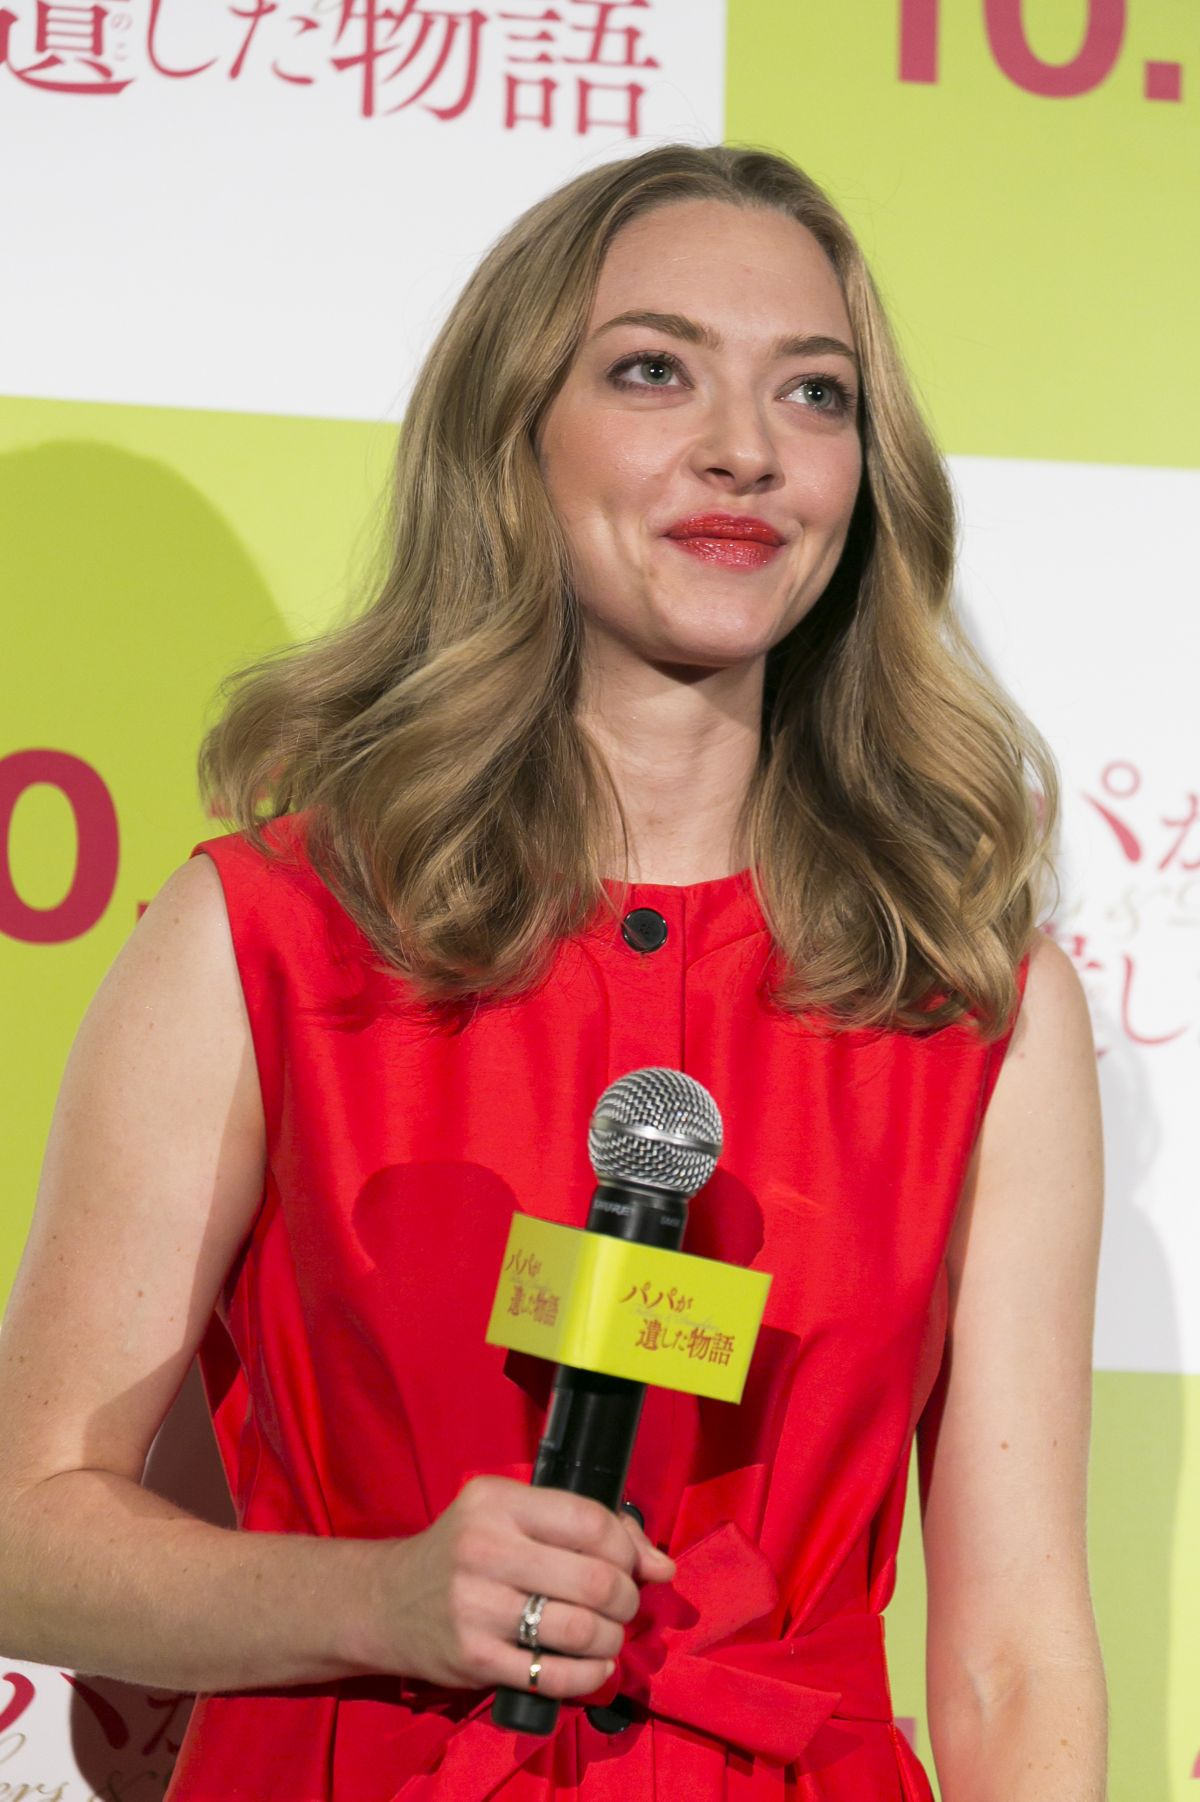 AMANDA SEYFRIED at Fathers and Daughters Promotional Event in Tokyo 10/11/2015